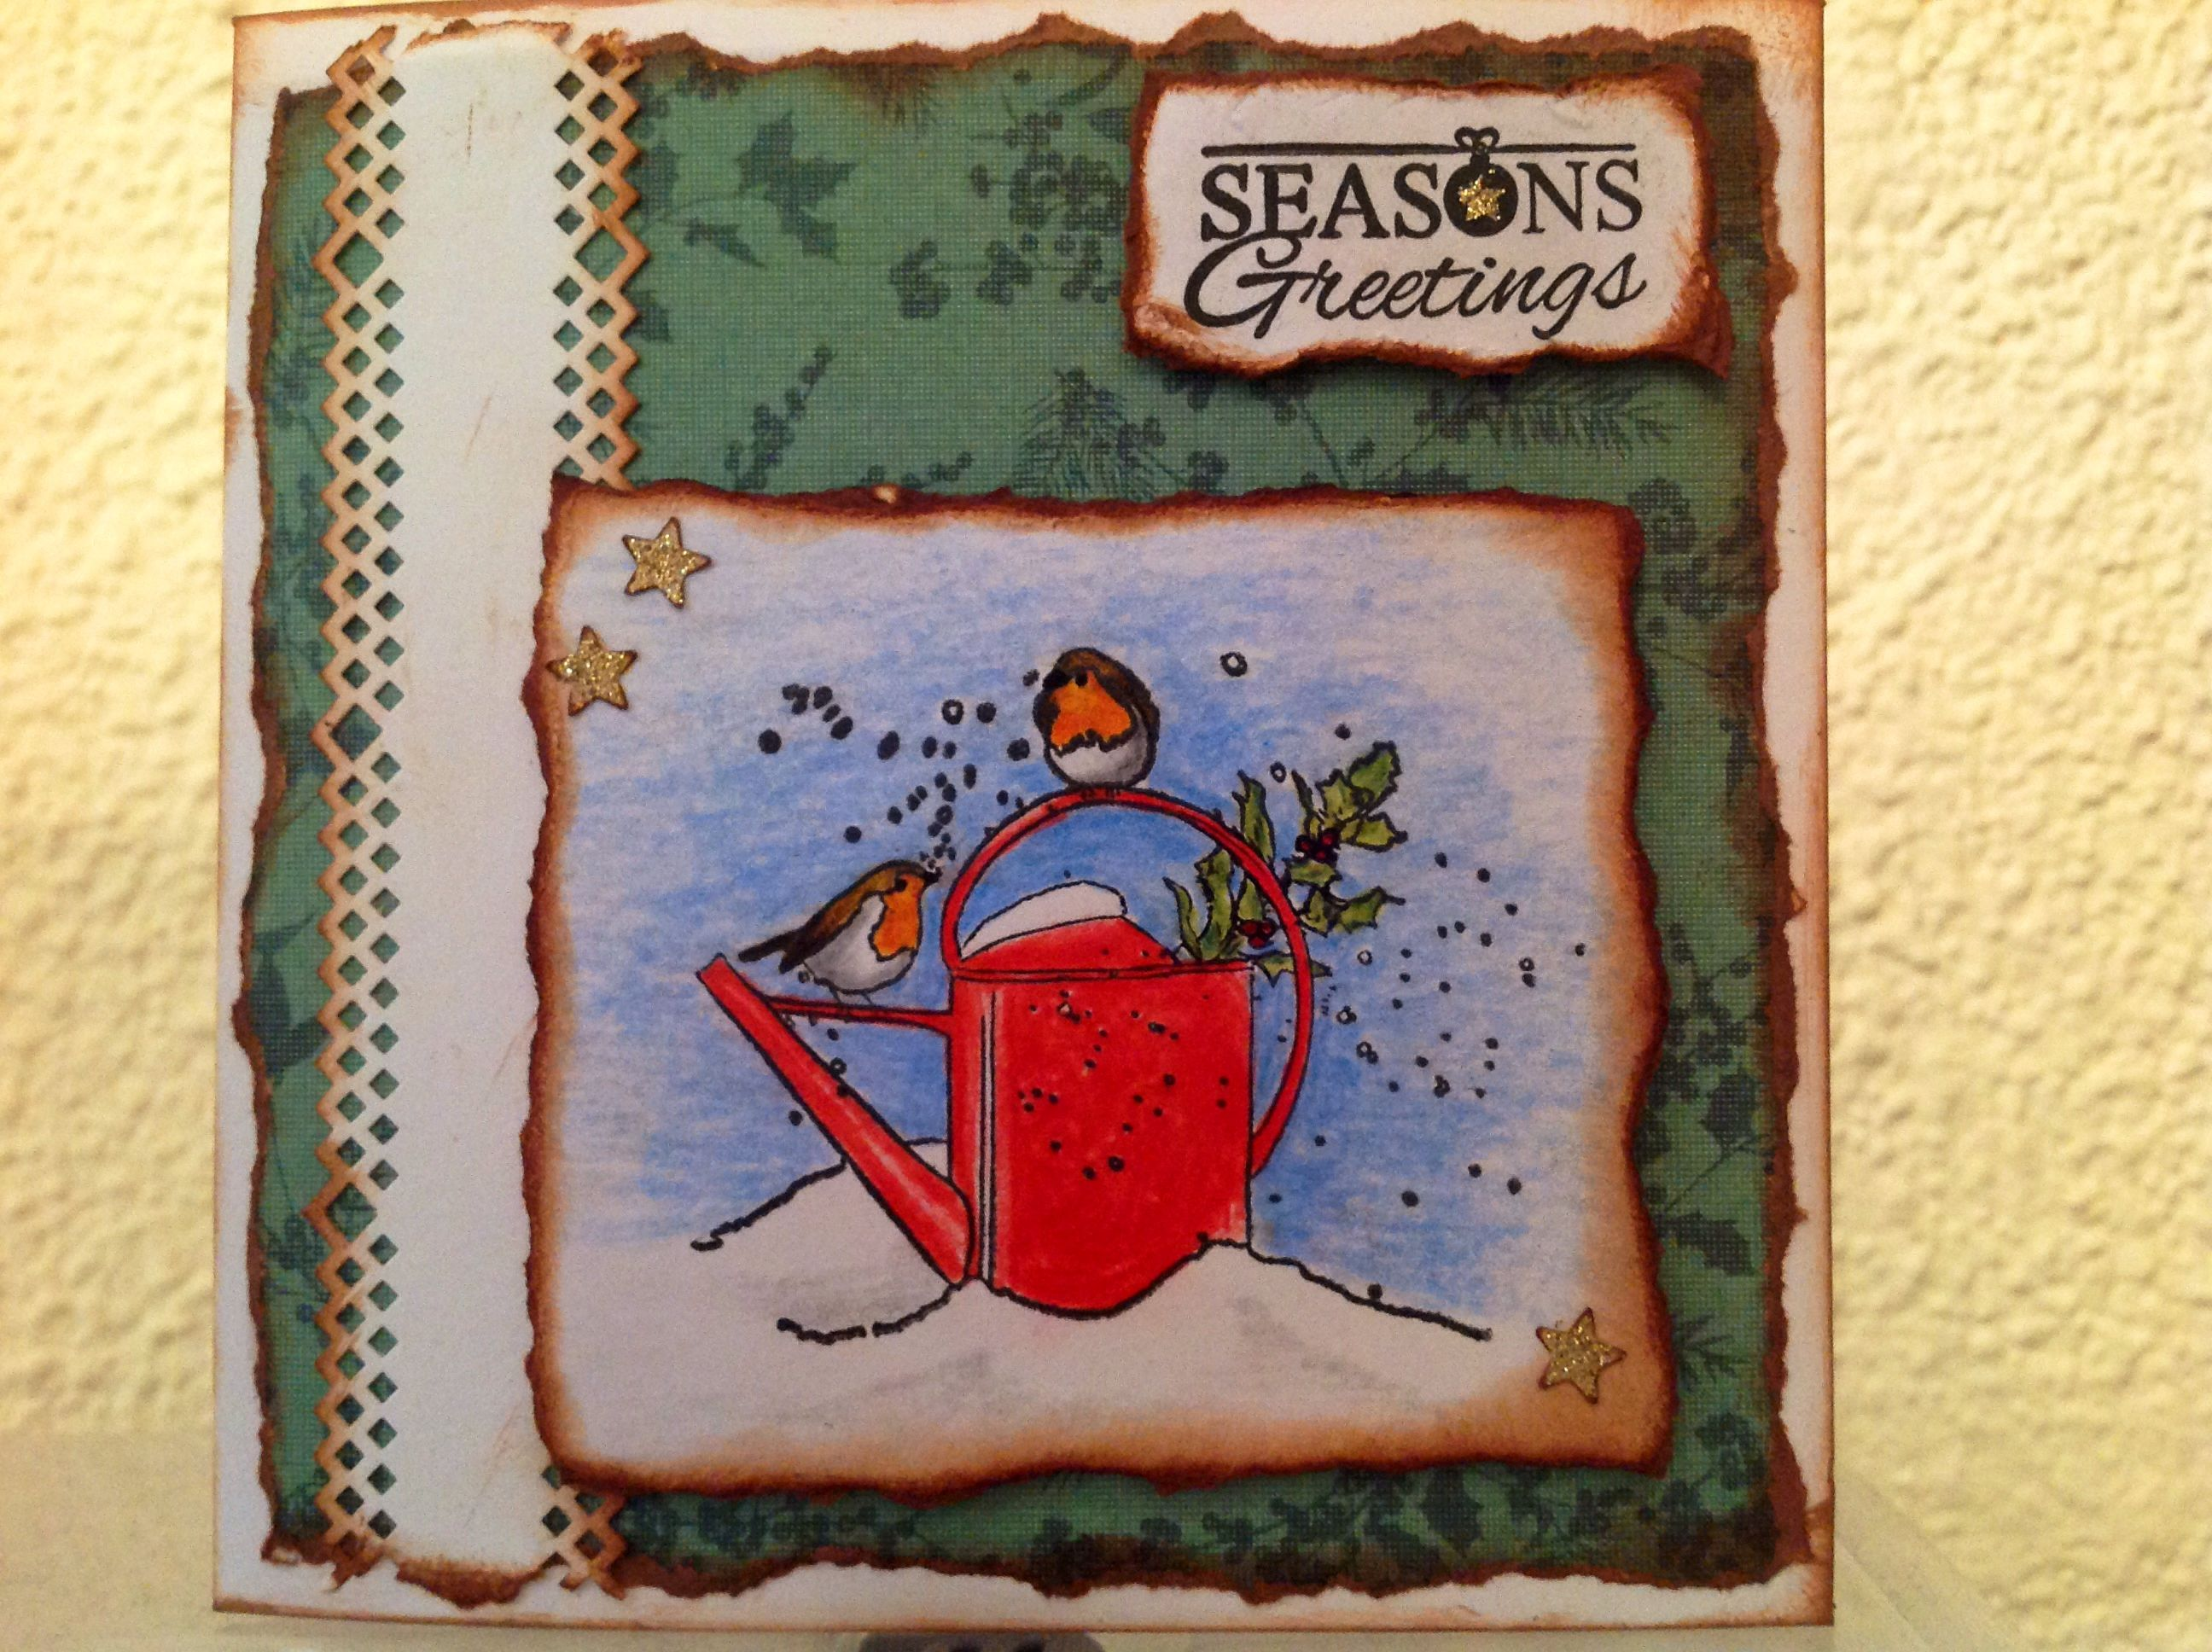 Christmas card with robins and red watering can